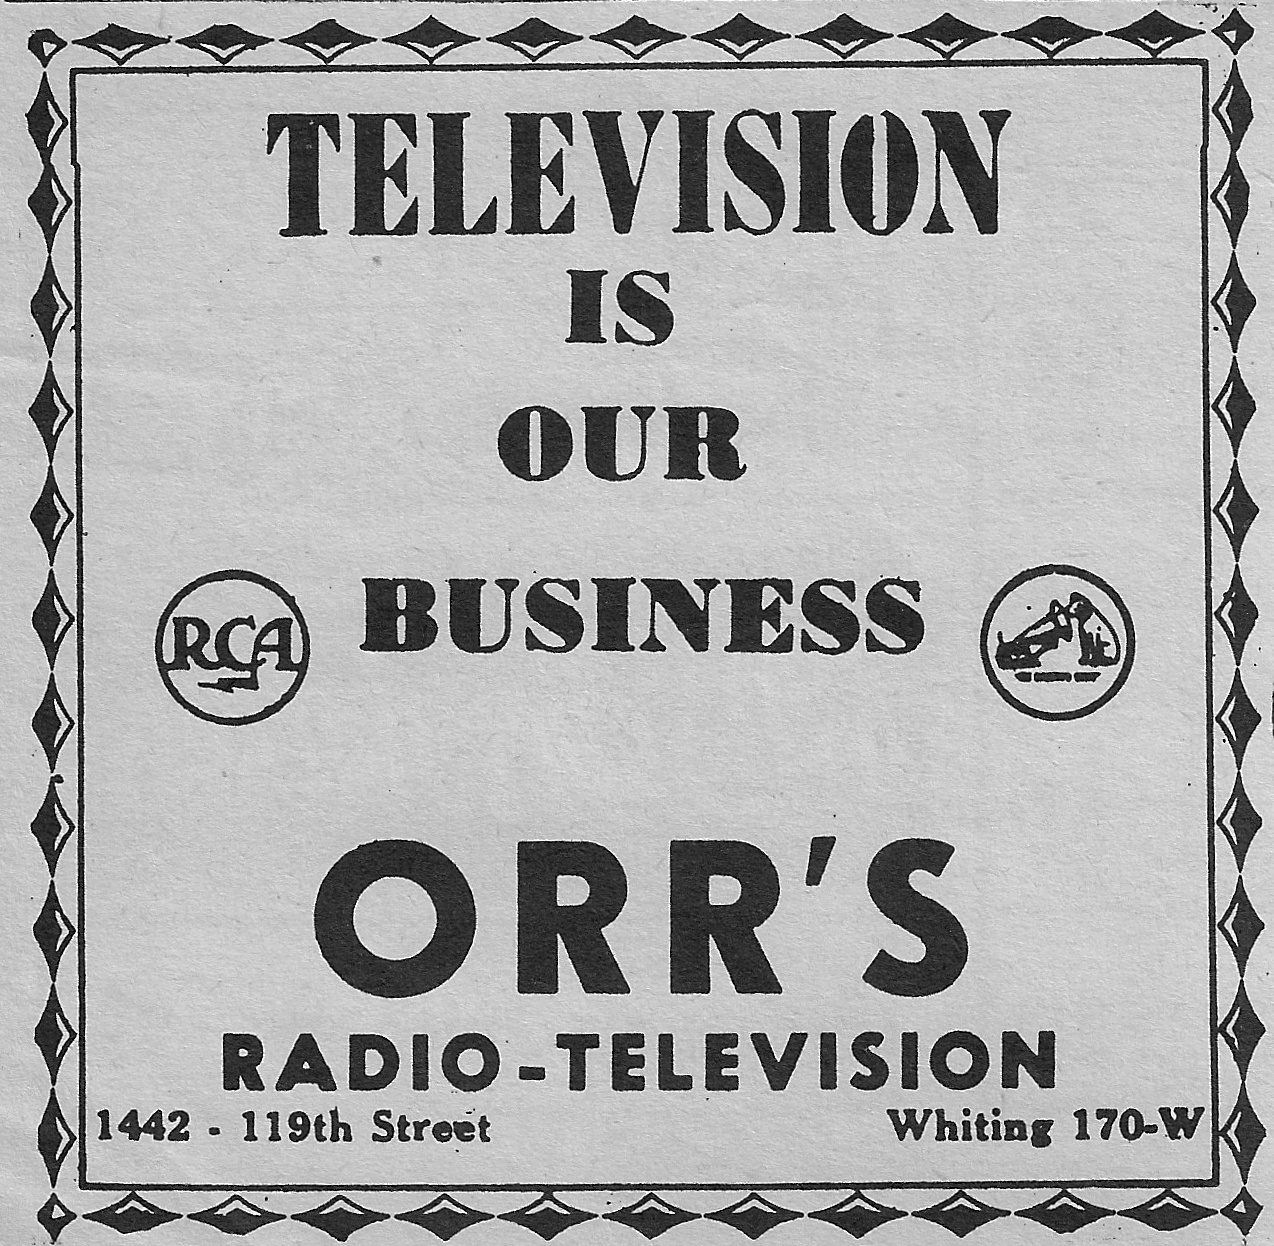 Television was still in its infancy when this 1952 ad for Orr's Radio & Television, 1442 119th Street, appeared in the newspaper.